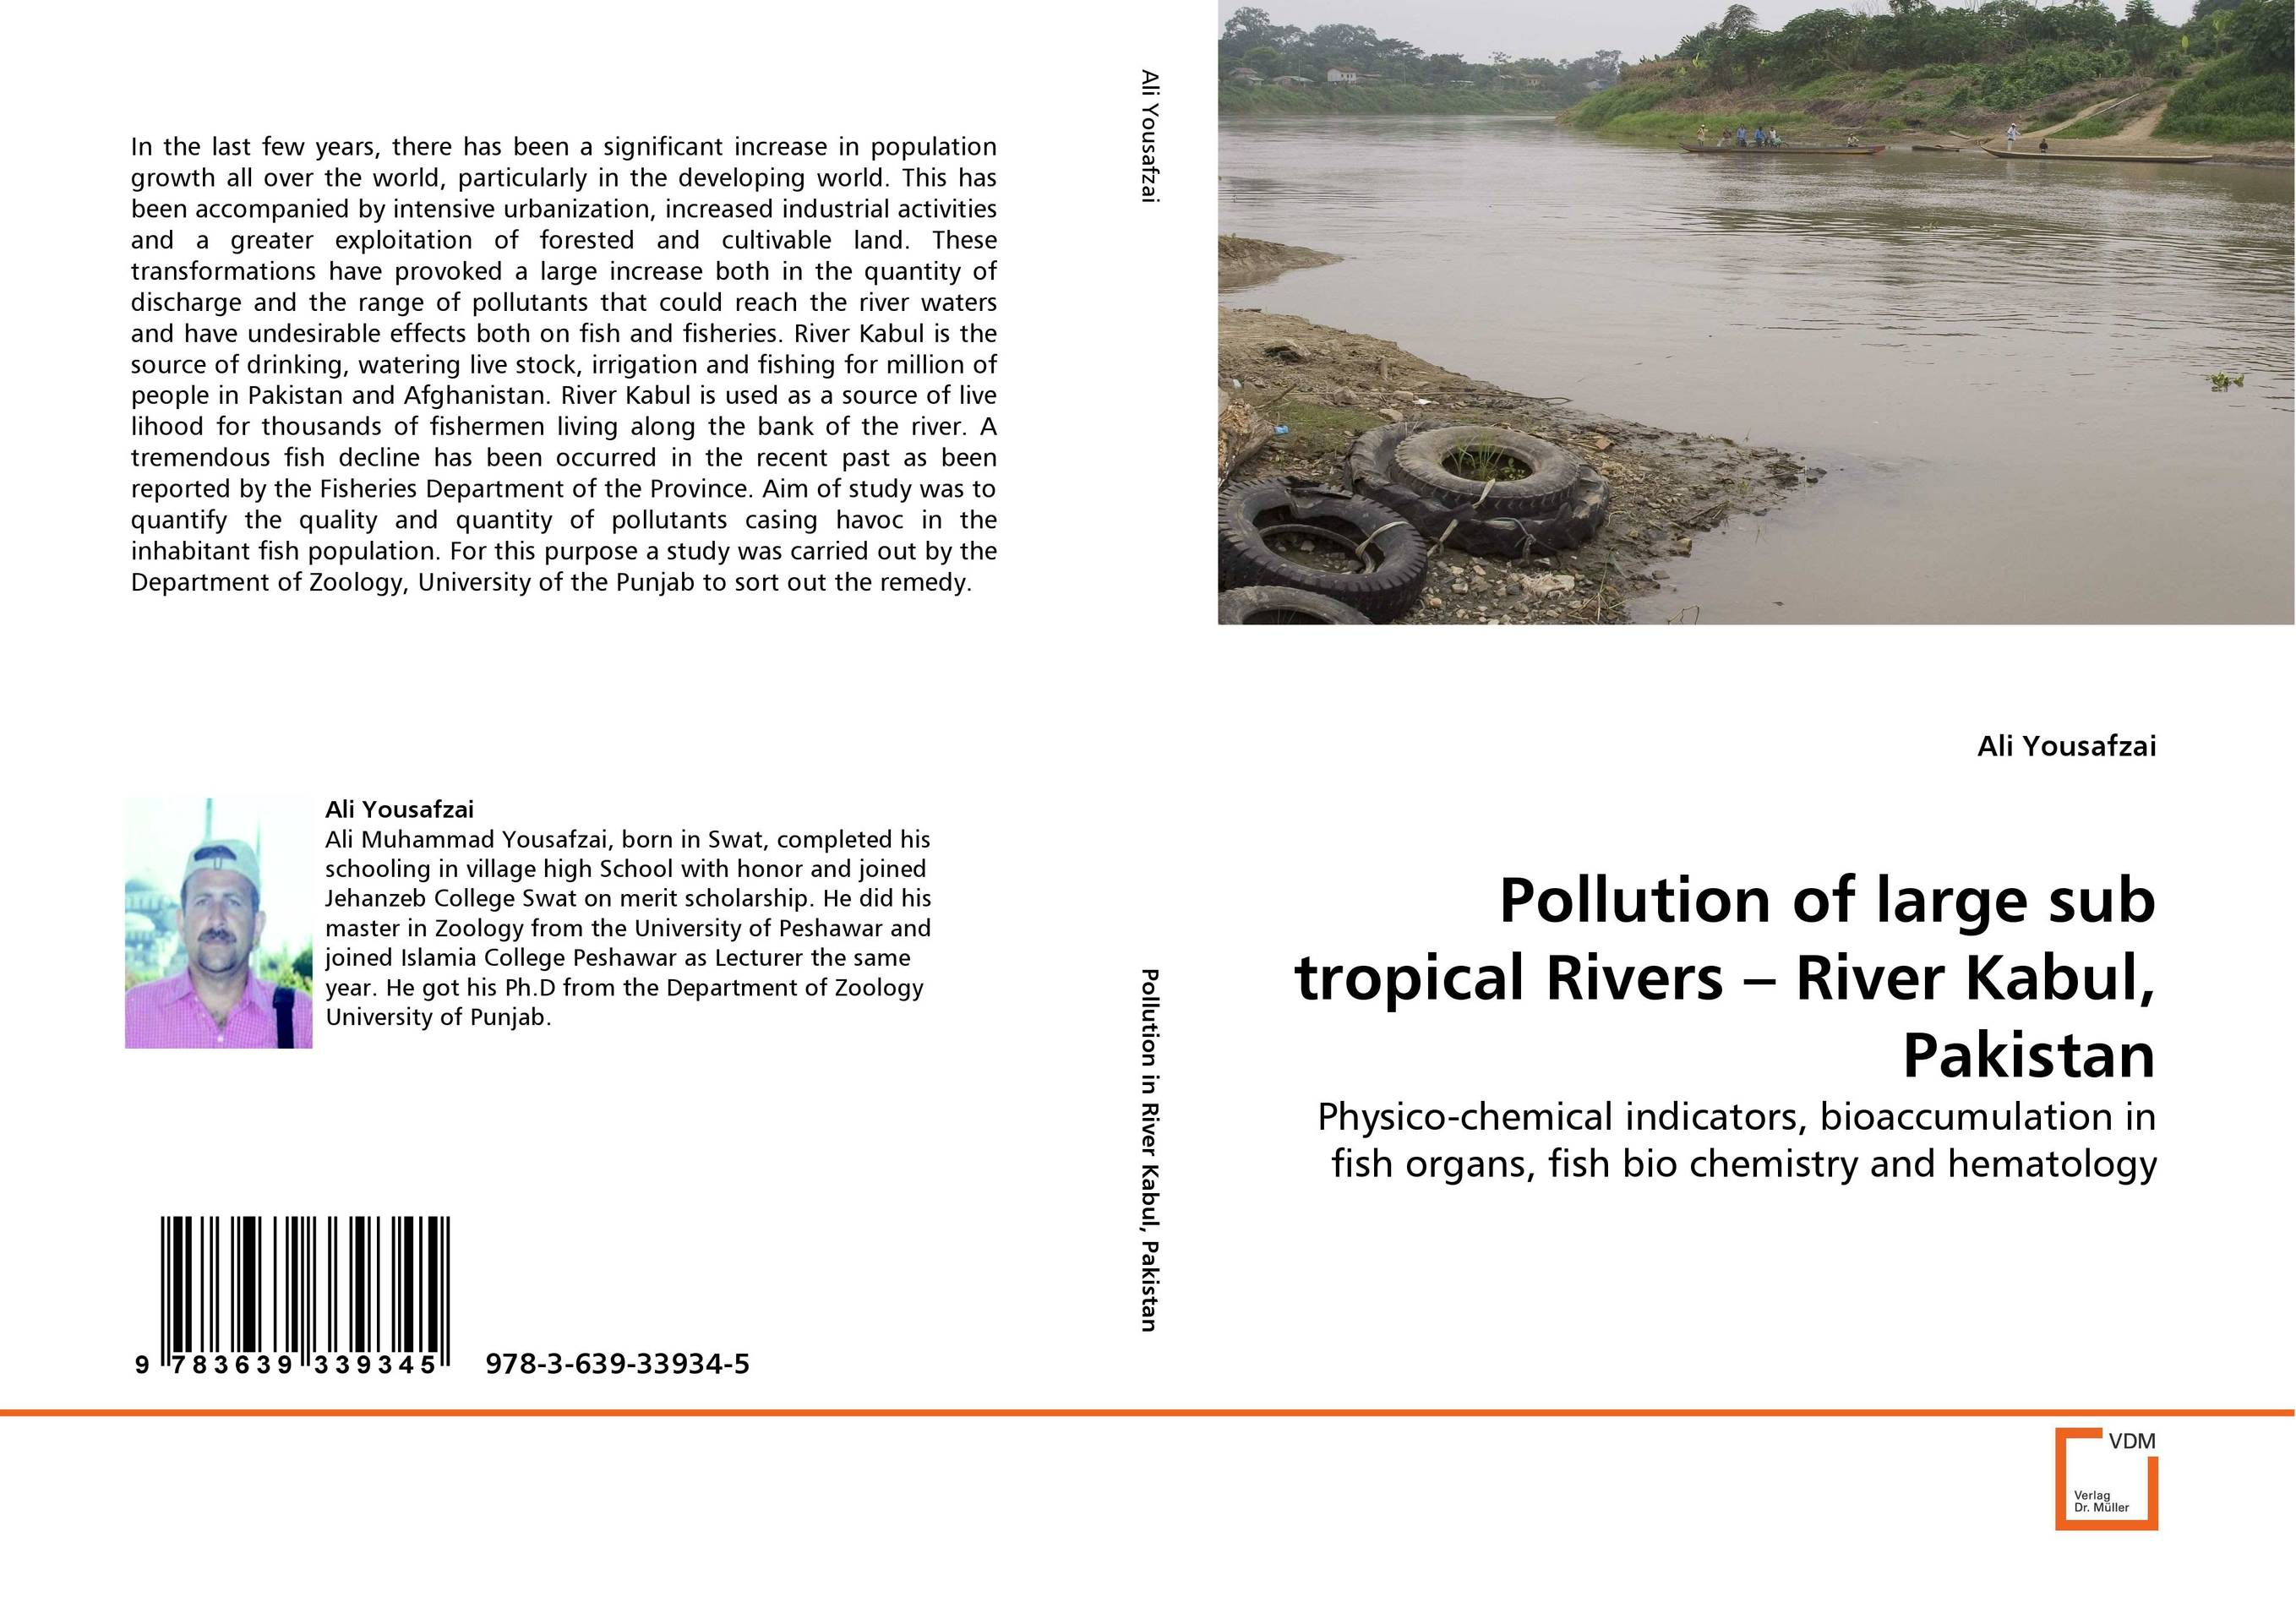 Pollution of large sub tropical Rivers – River Kabul, Pakistan pakistan on the brink the future of pakistan afghanistan and the west